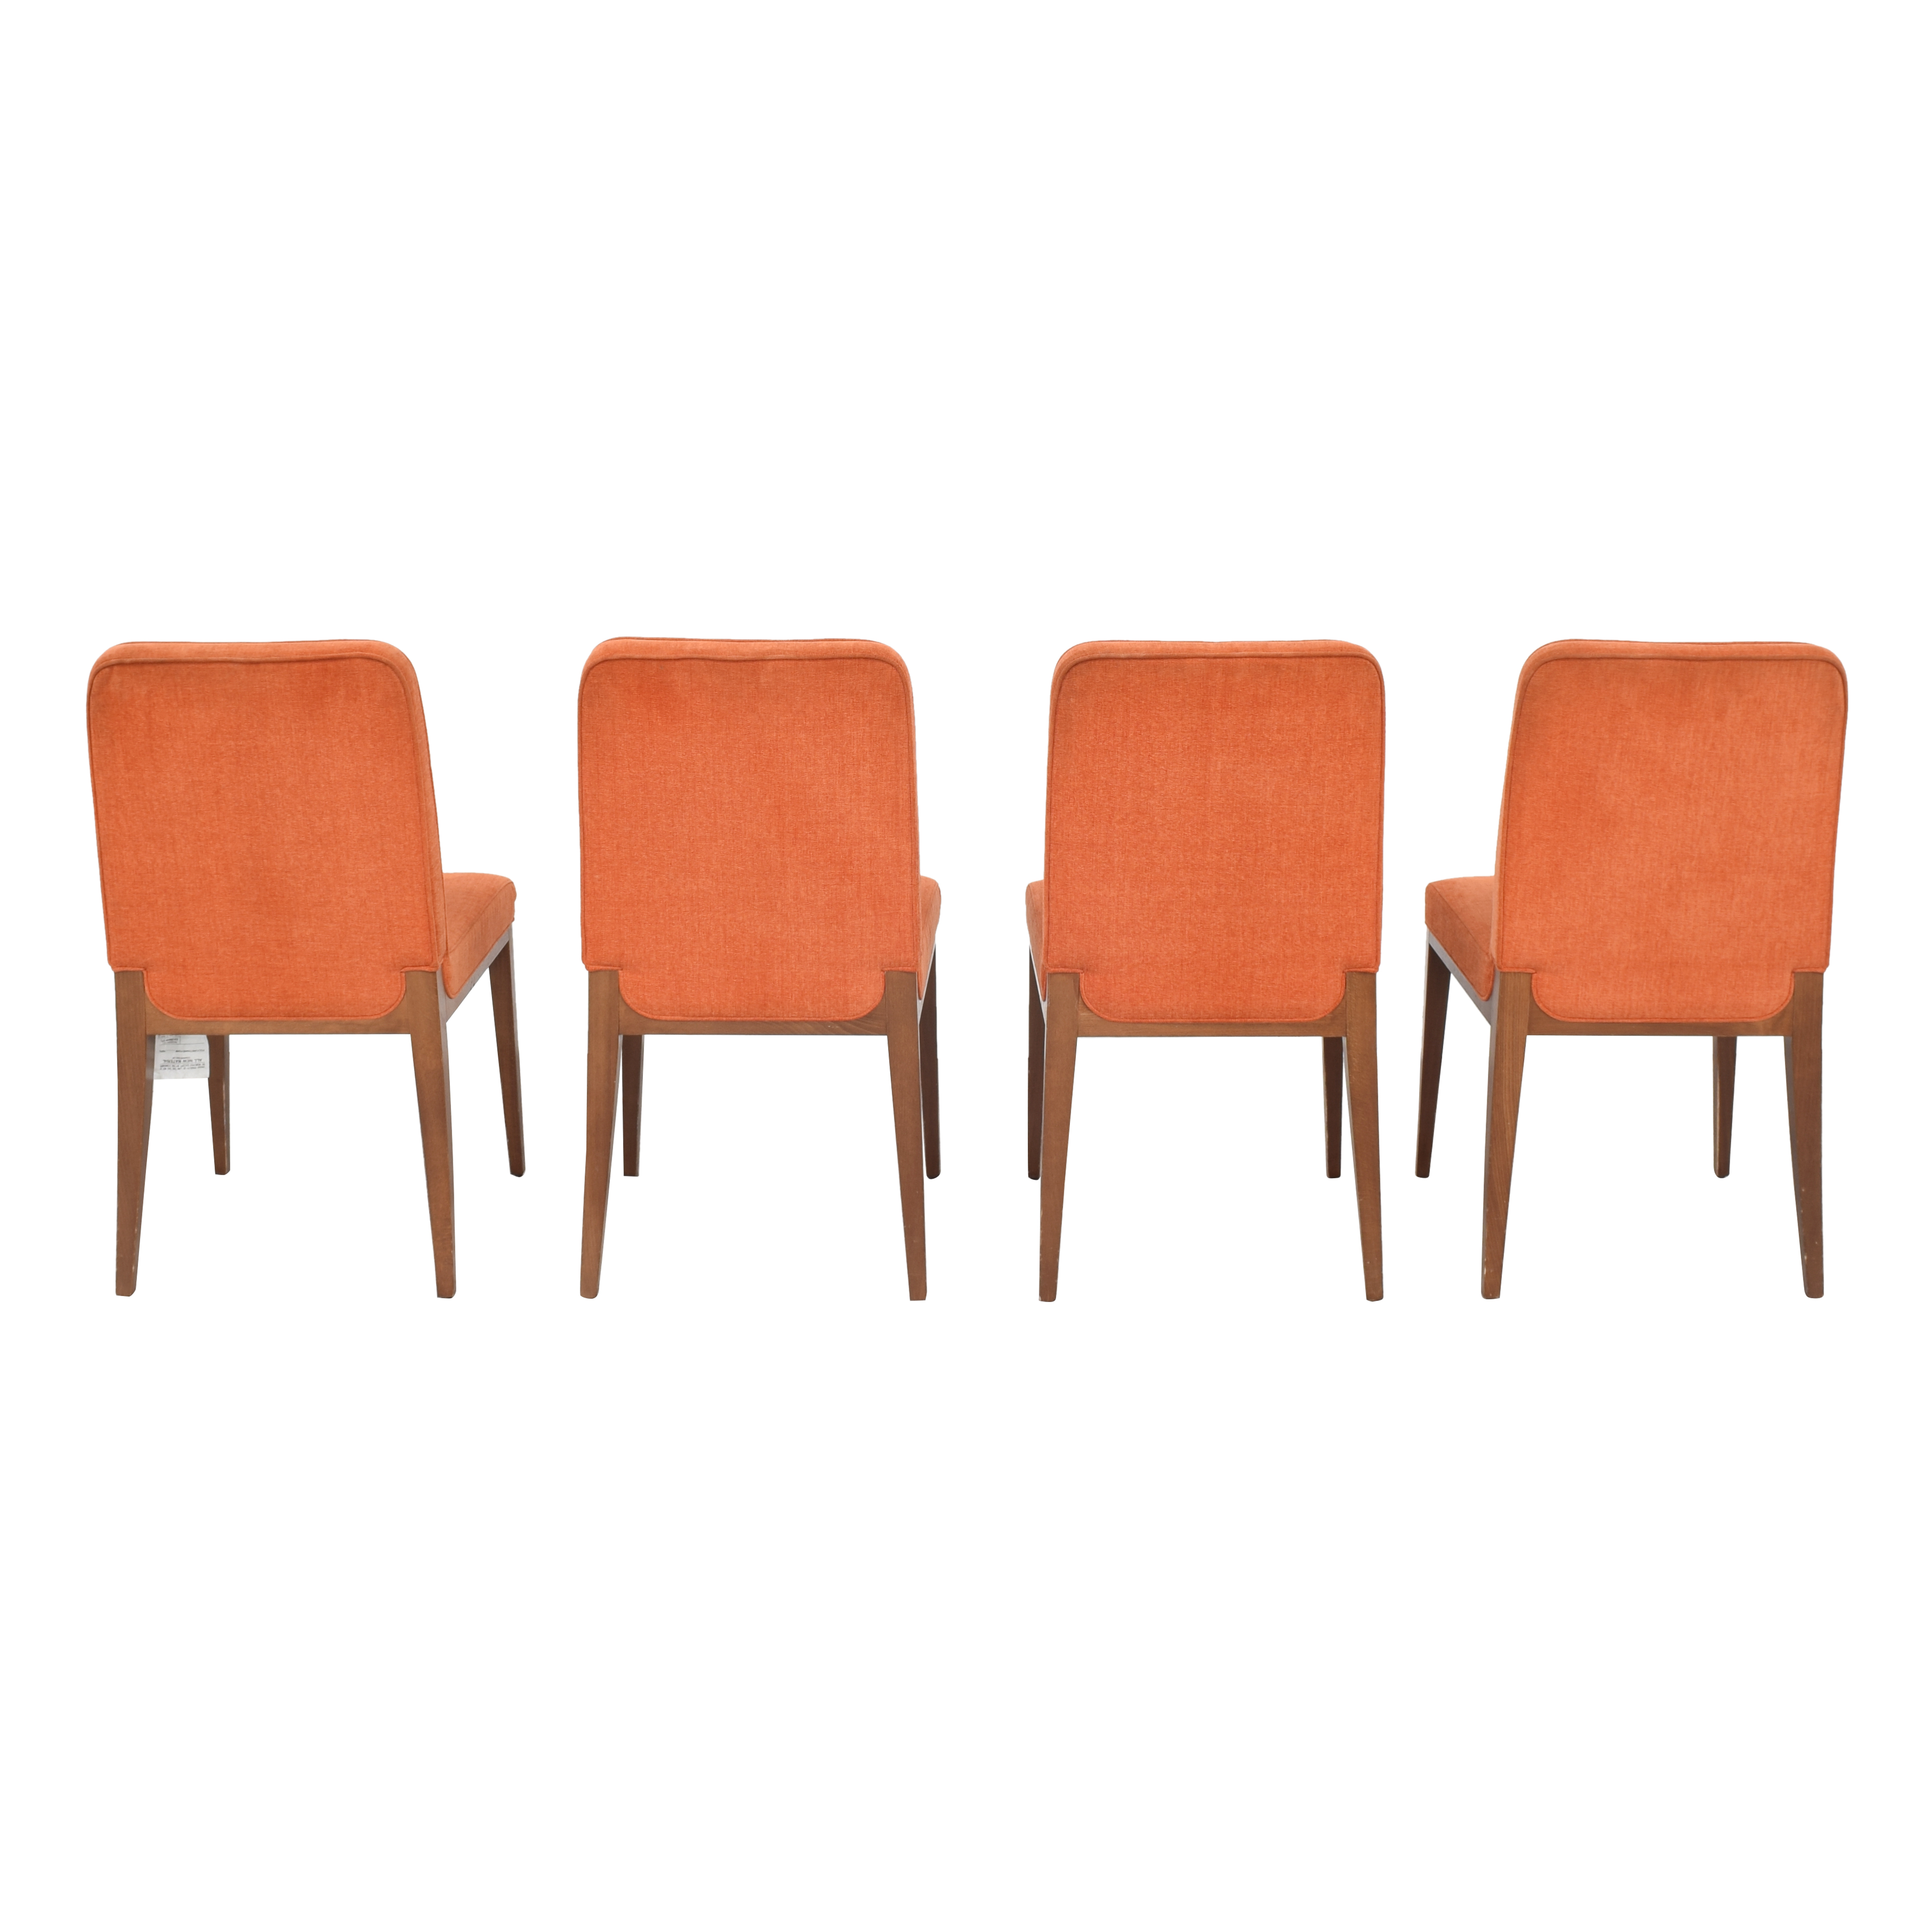 Montbel Montbel Dining Chairs dimensions